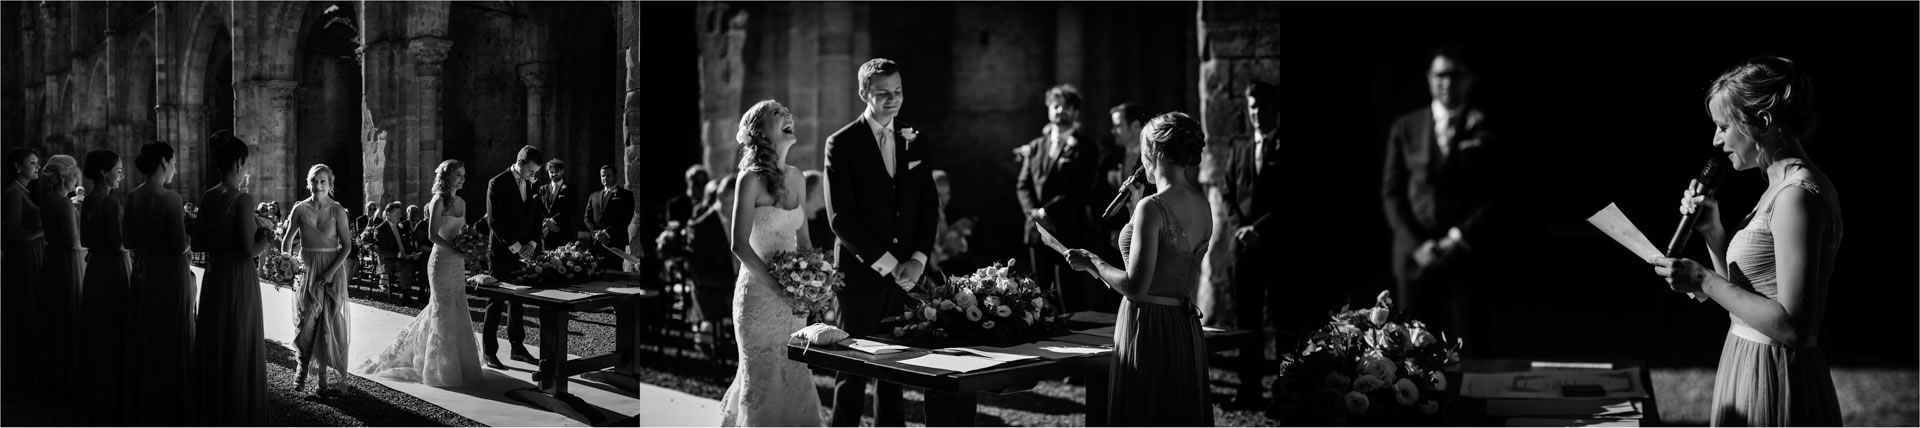 - 23 :: Wedding at Borgo Santo Pietro // San Galgano // WPPI 2018 // You look like a movie :: Luxury wedding photography - 22 ::  - 23